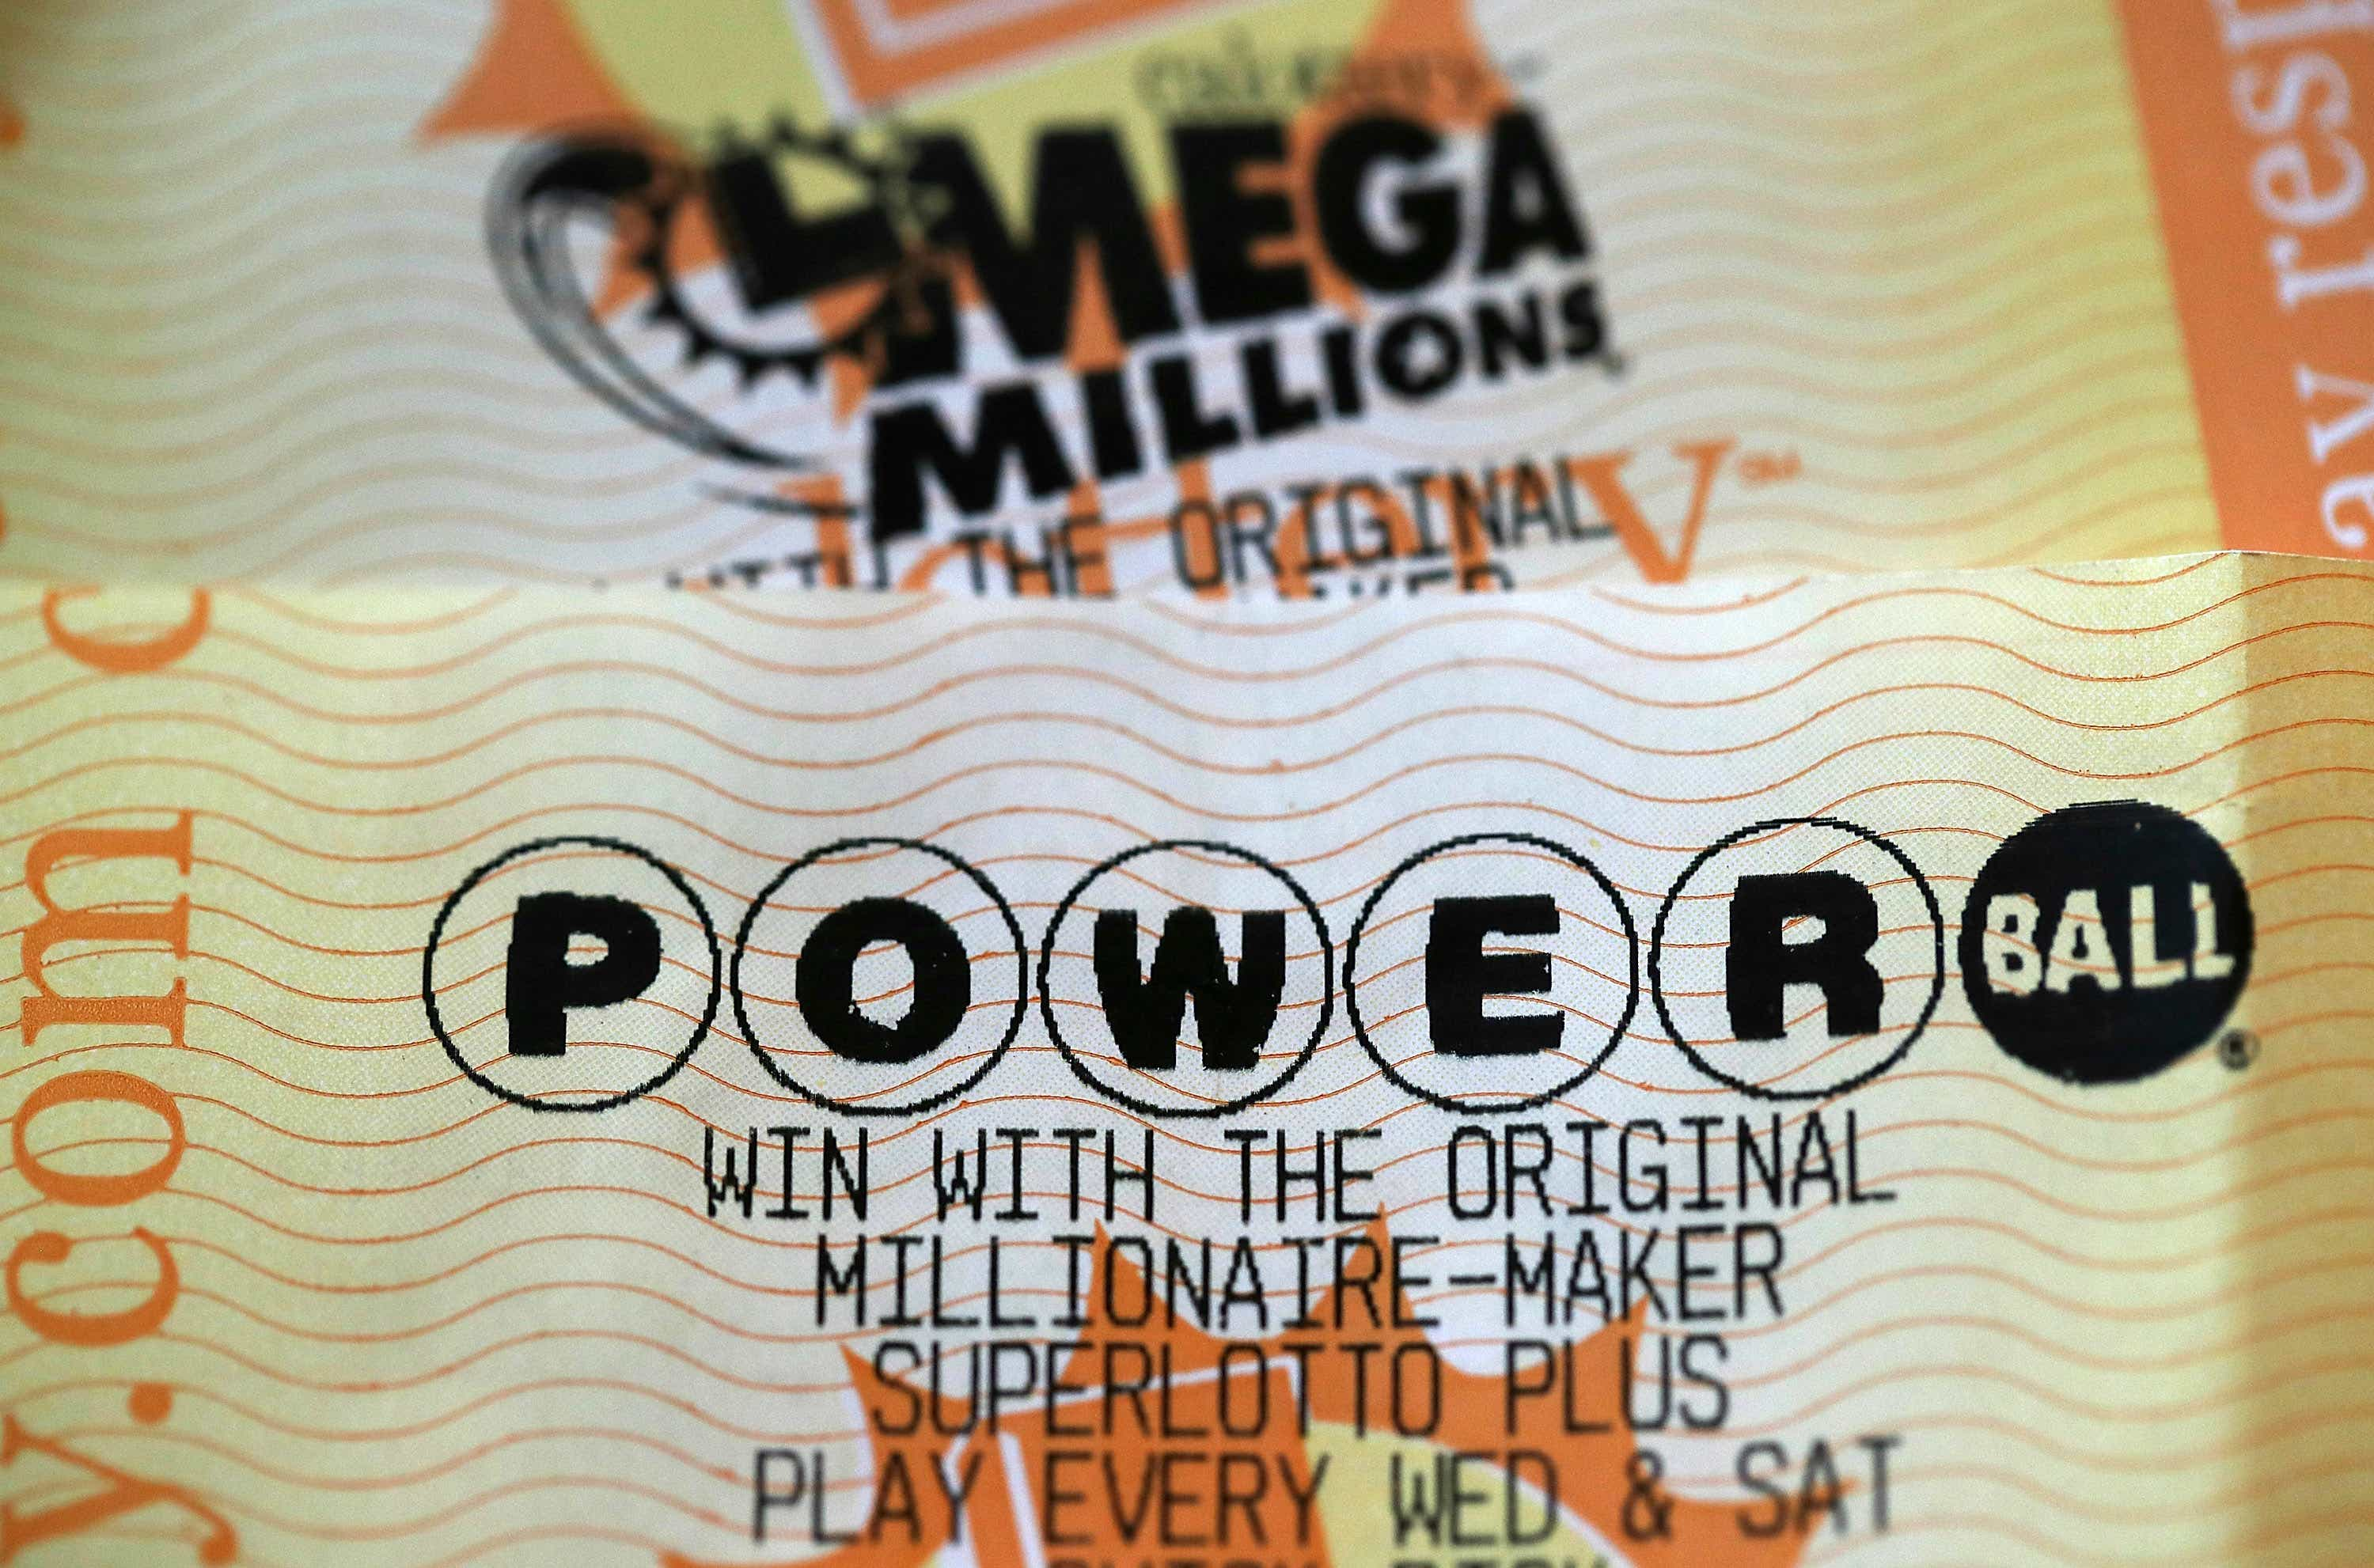 This is what you can buy if you win the $1 billion lottery